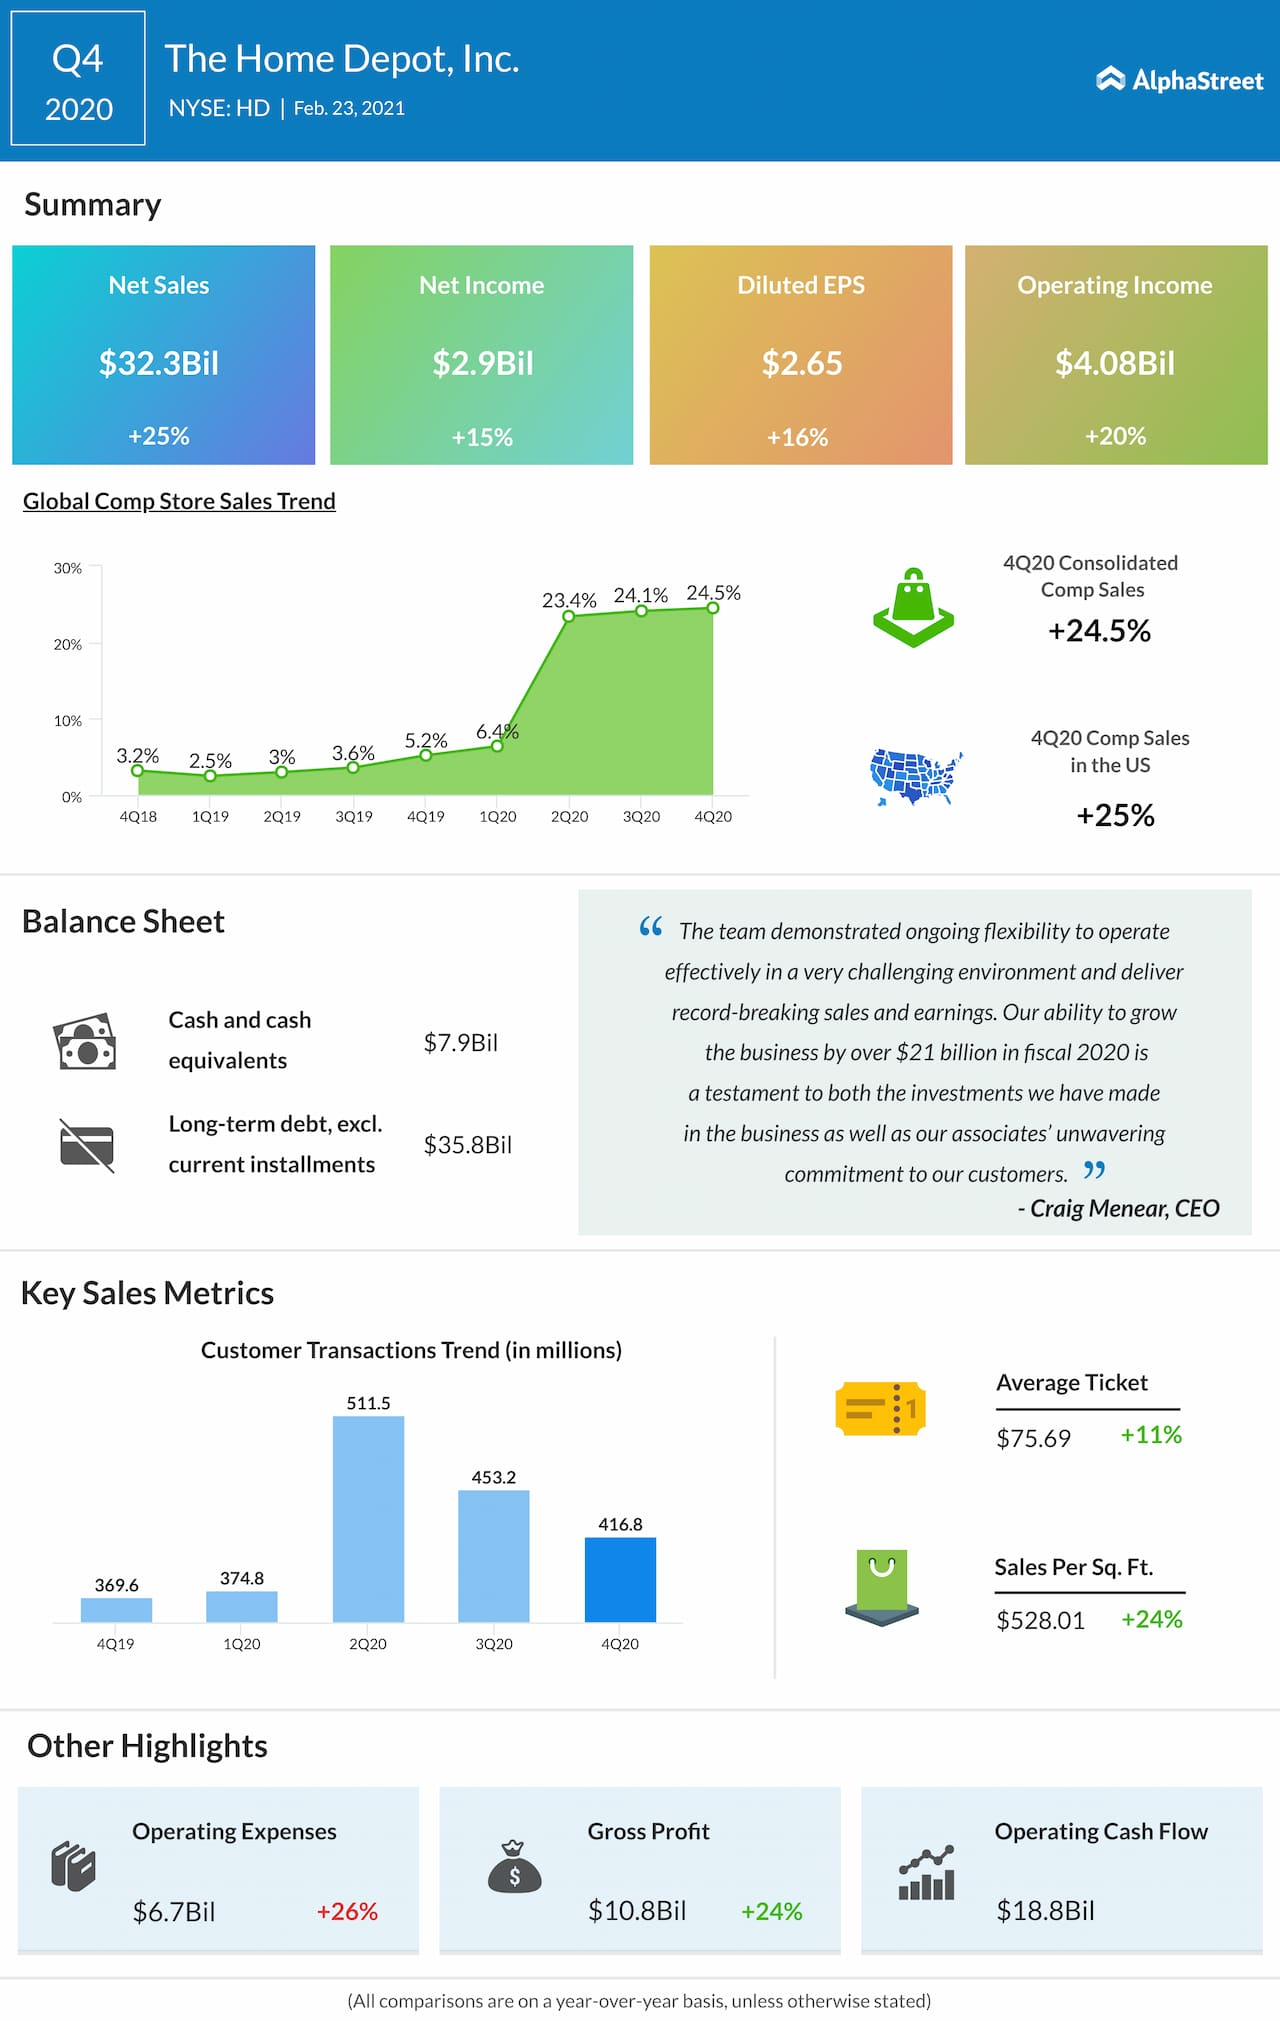 Home Depot Q4 2020 earnings infographic